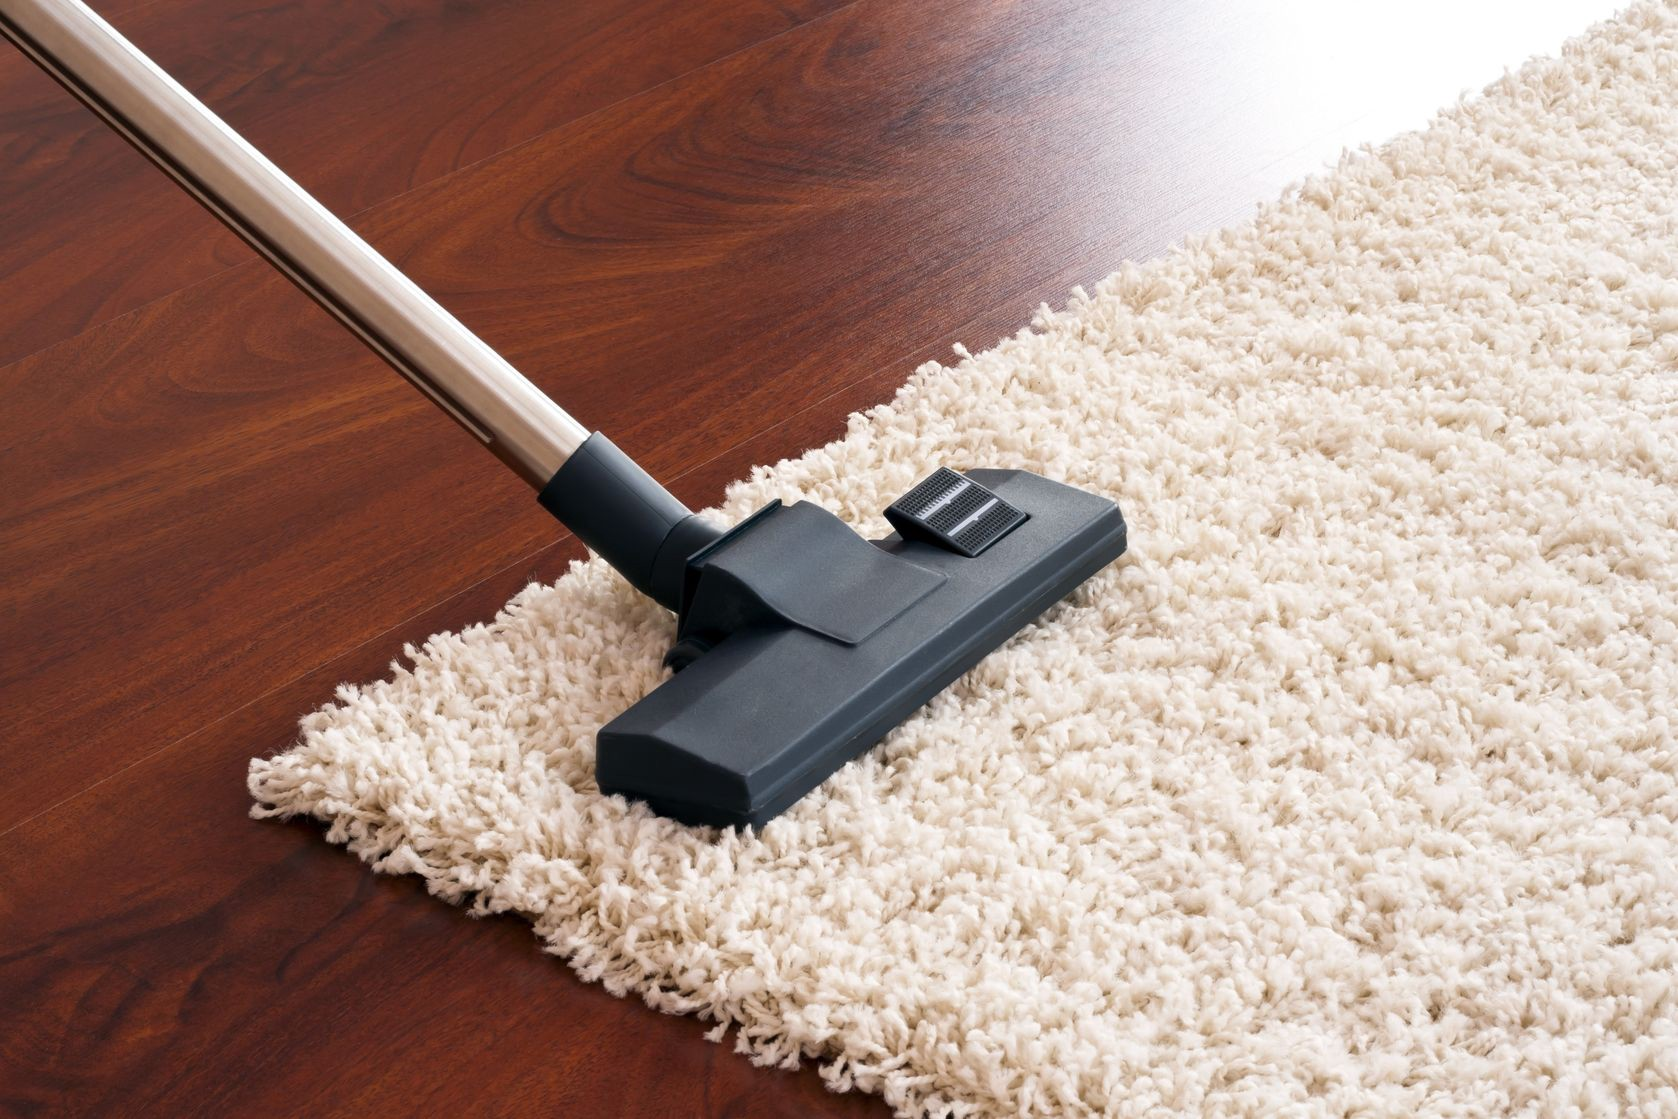 Sofa Carpet Dry Cleaning The